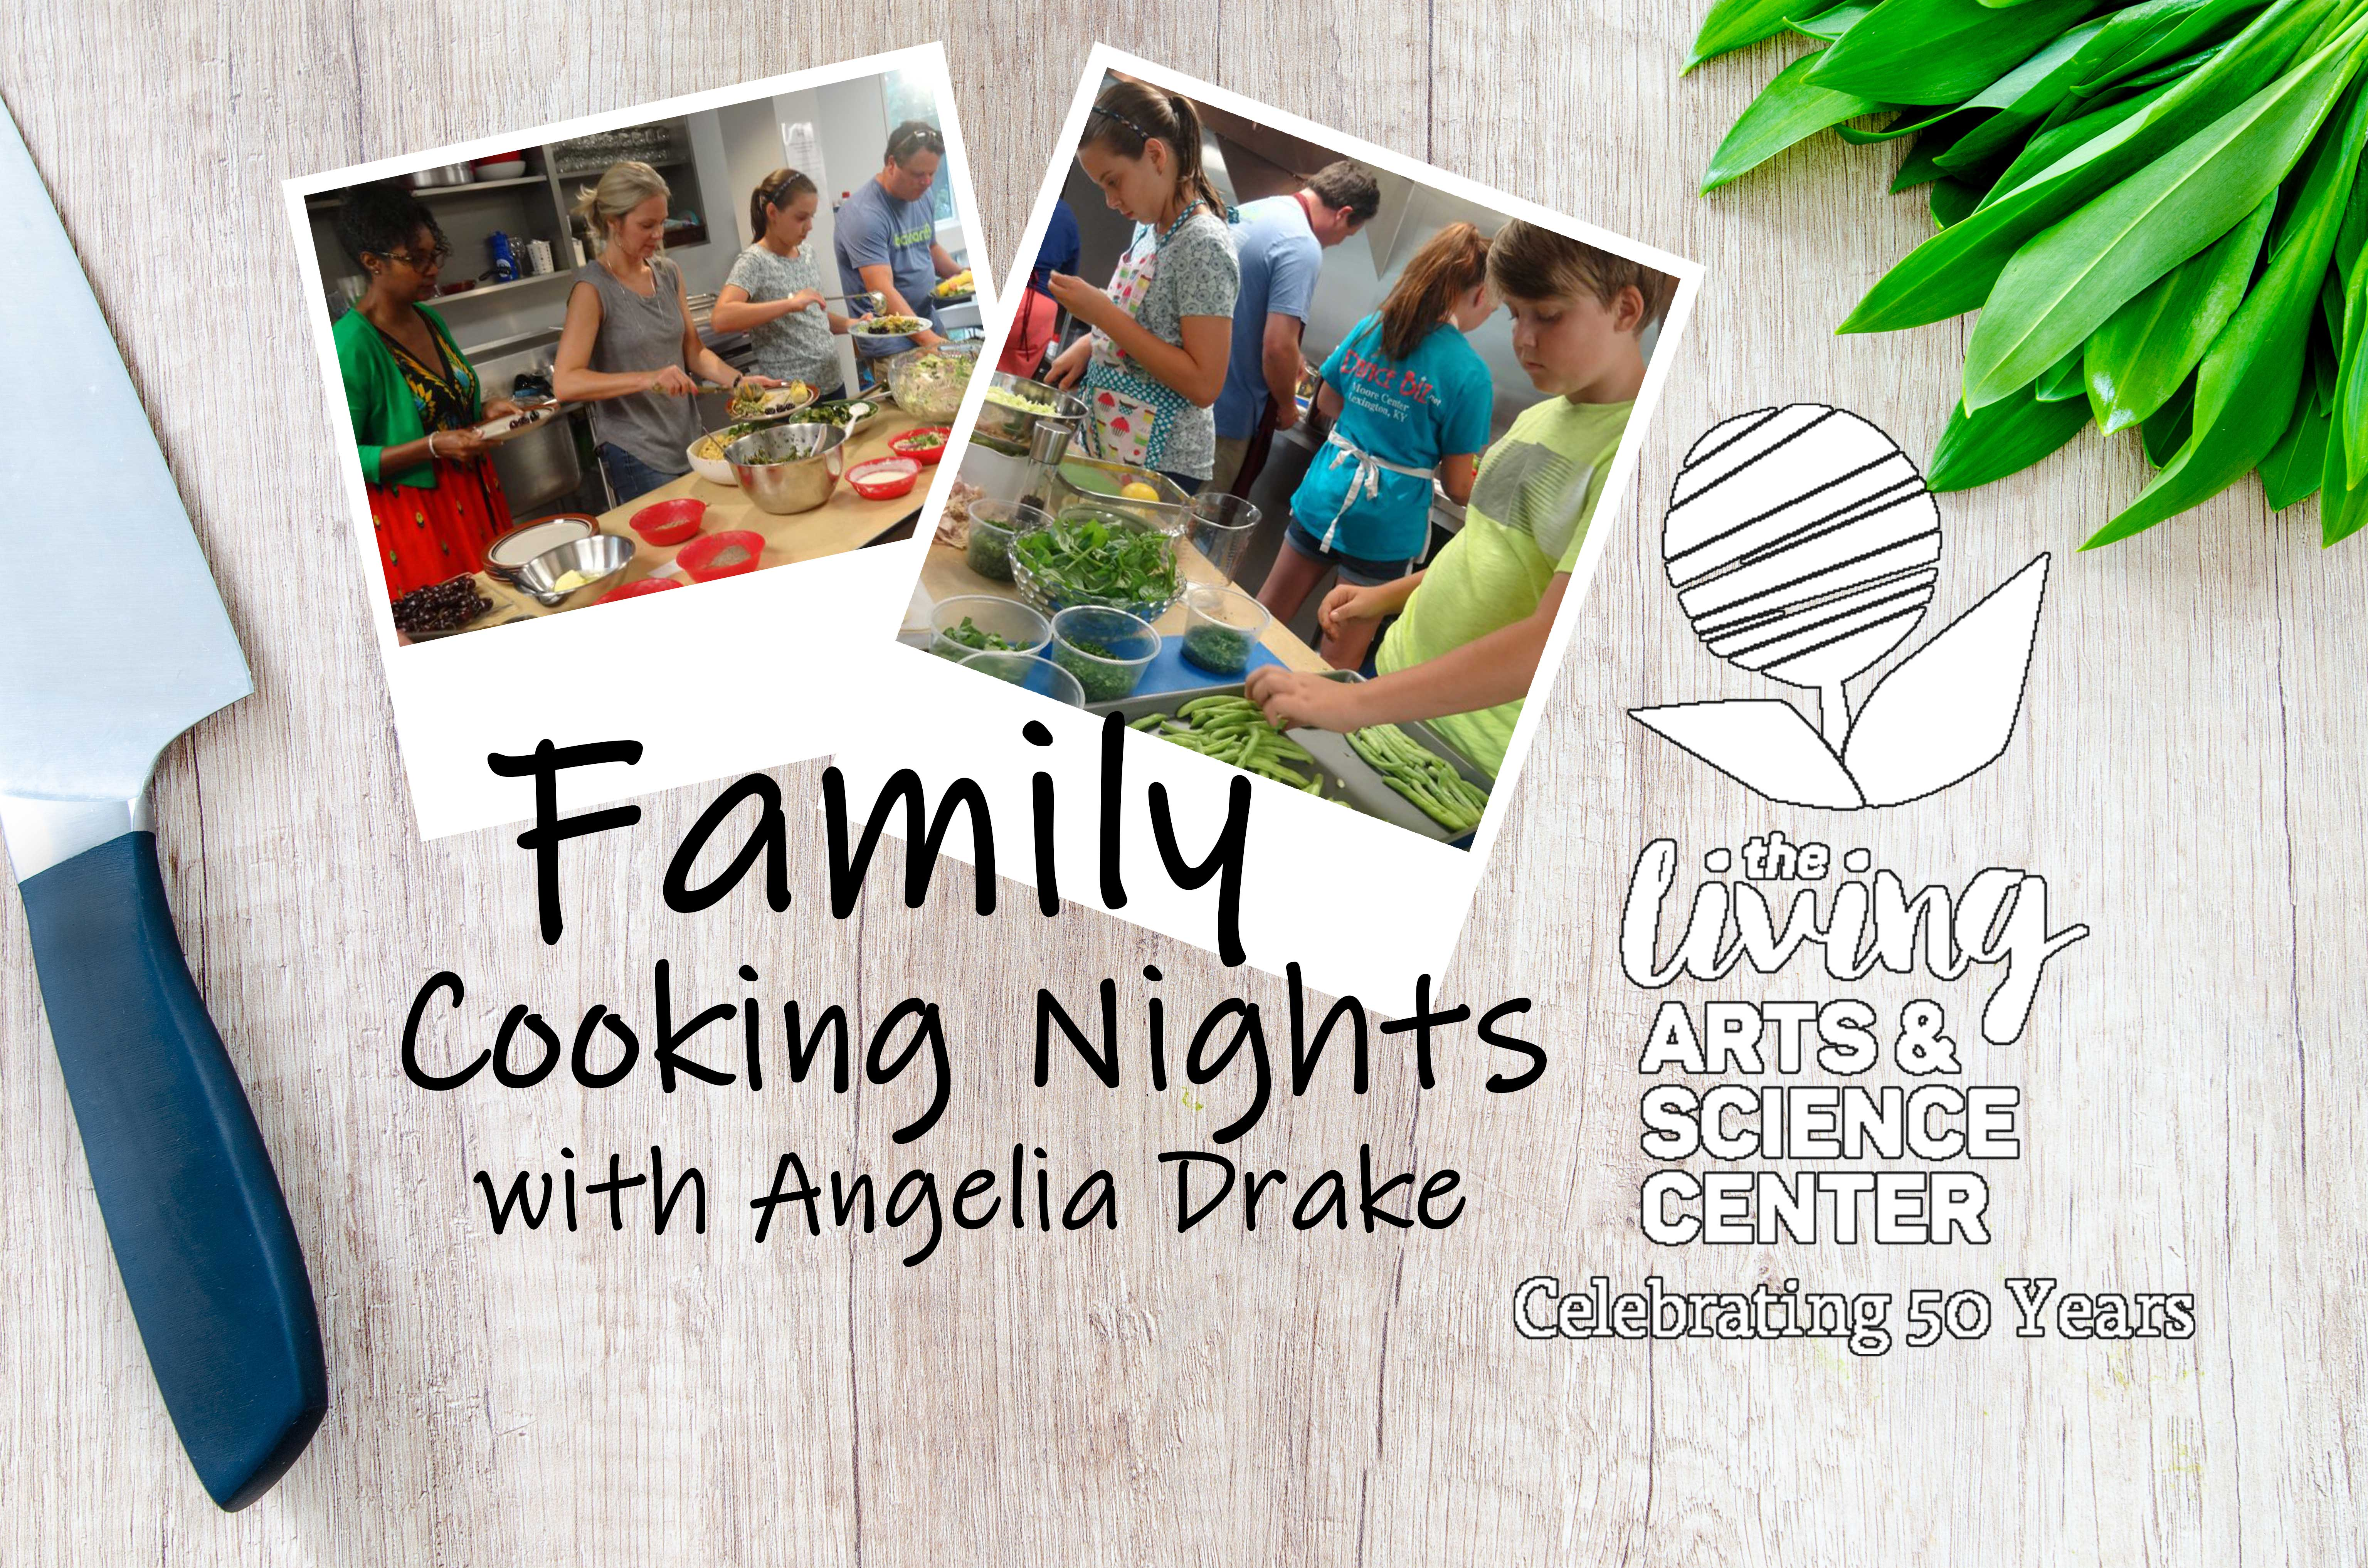 Family Cooking Night With Angelia Drake